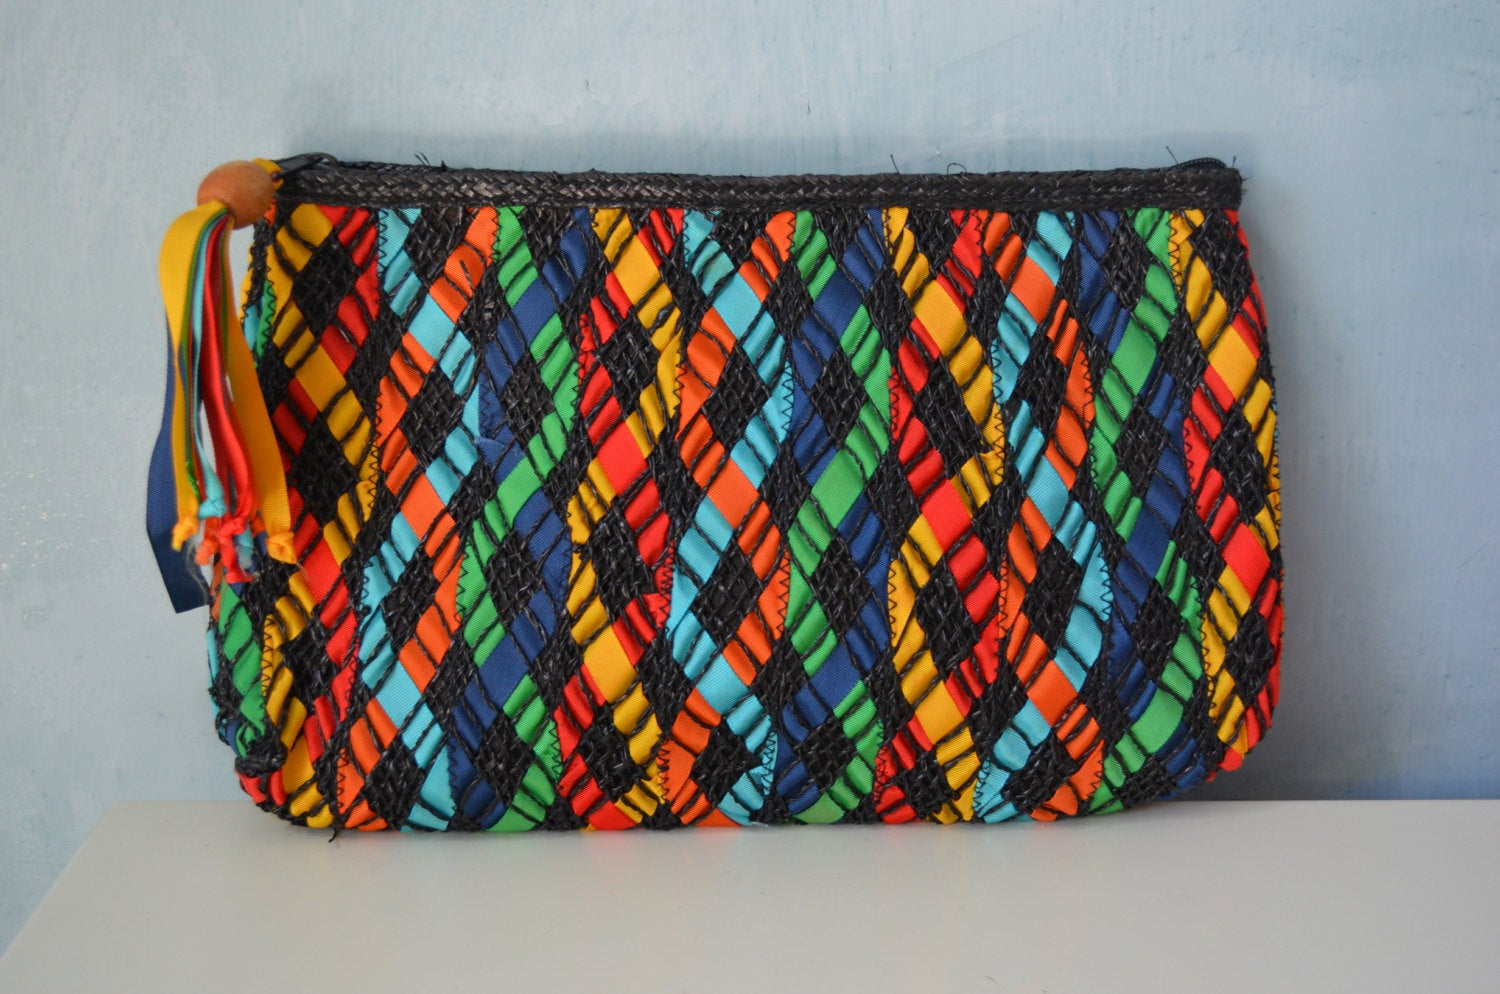 Spring Multi Colored Woven Ribbon & Nylon Handmade Beach Oversized Clutch Sportswear Resort